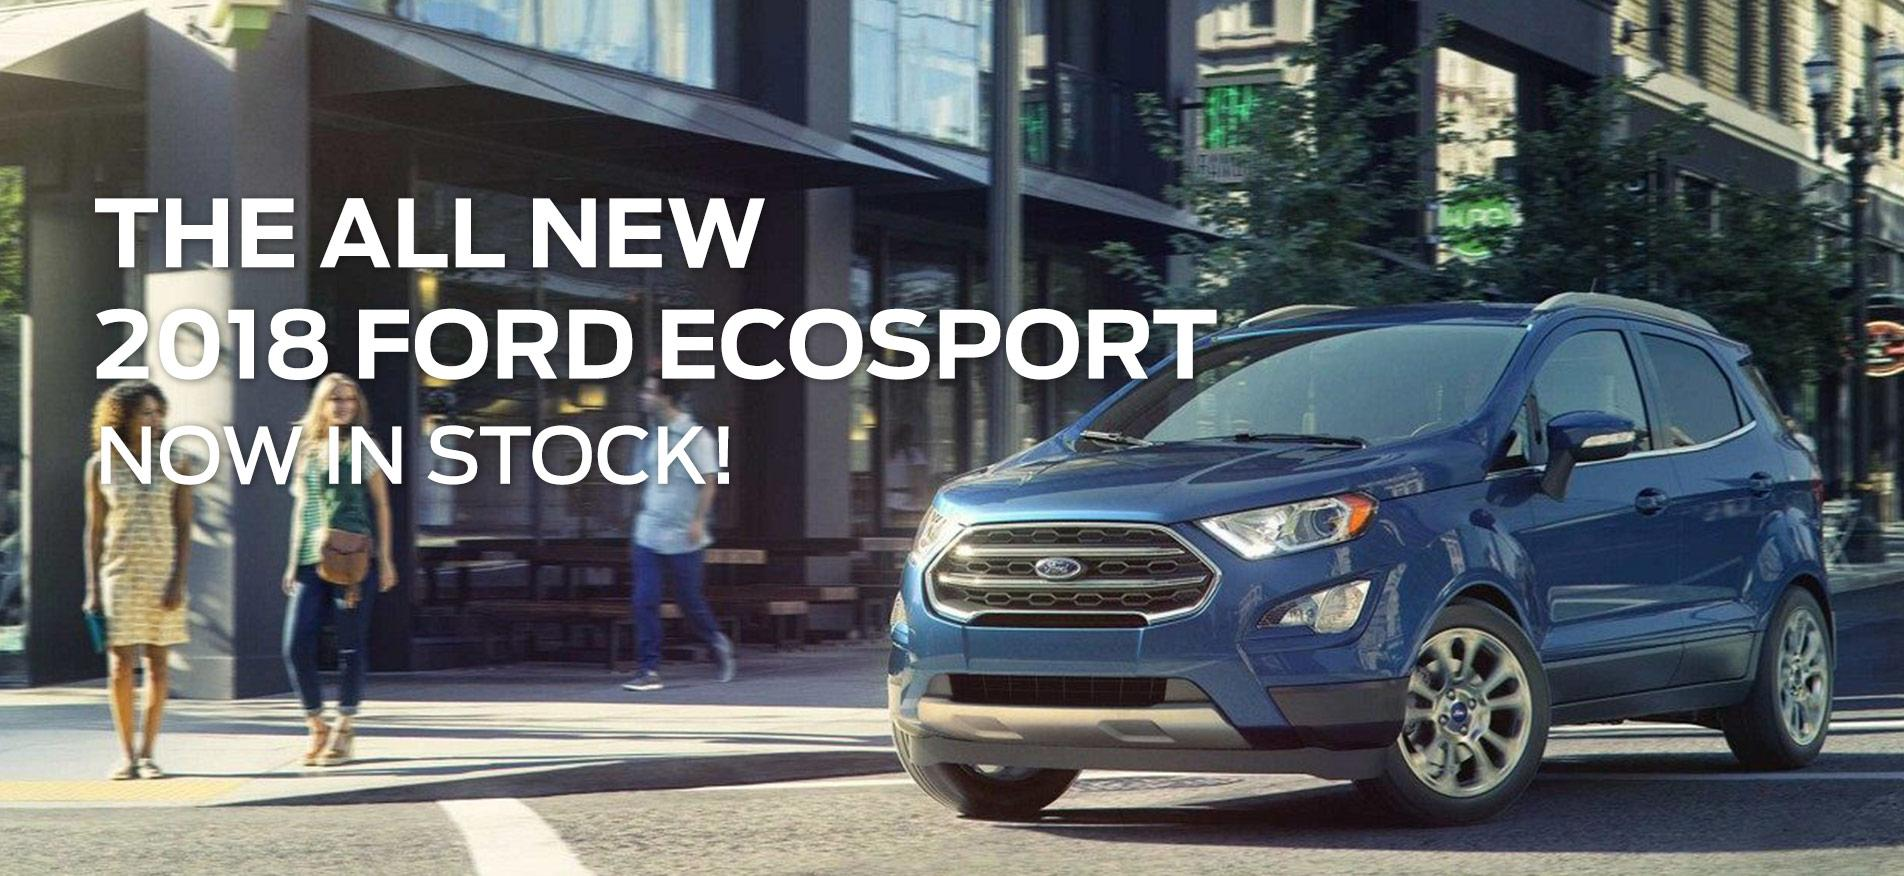 The All New 2018 Ford EcoSport